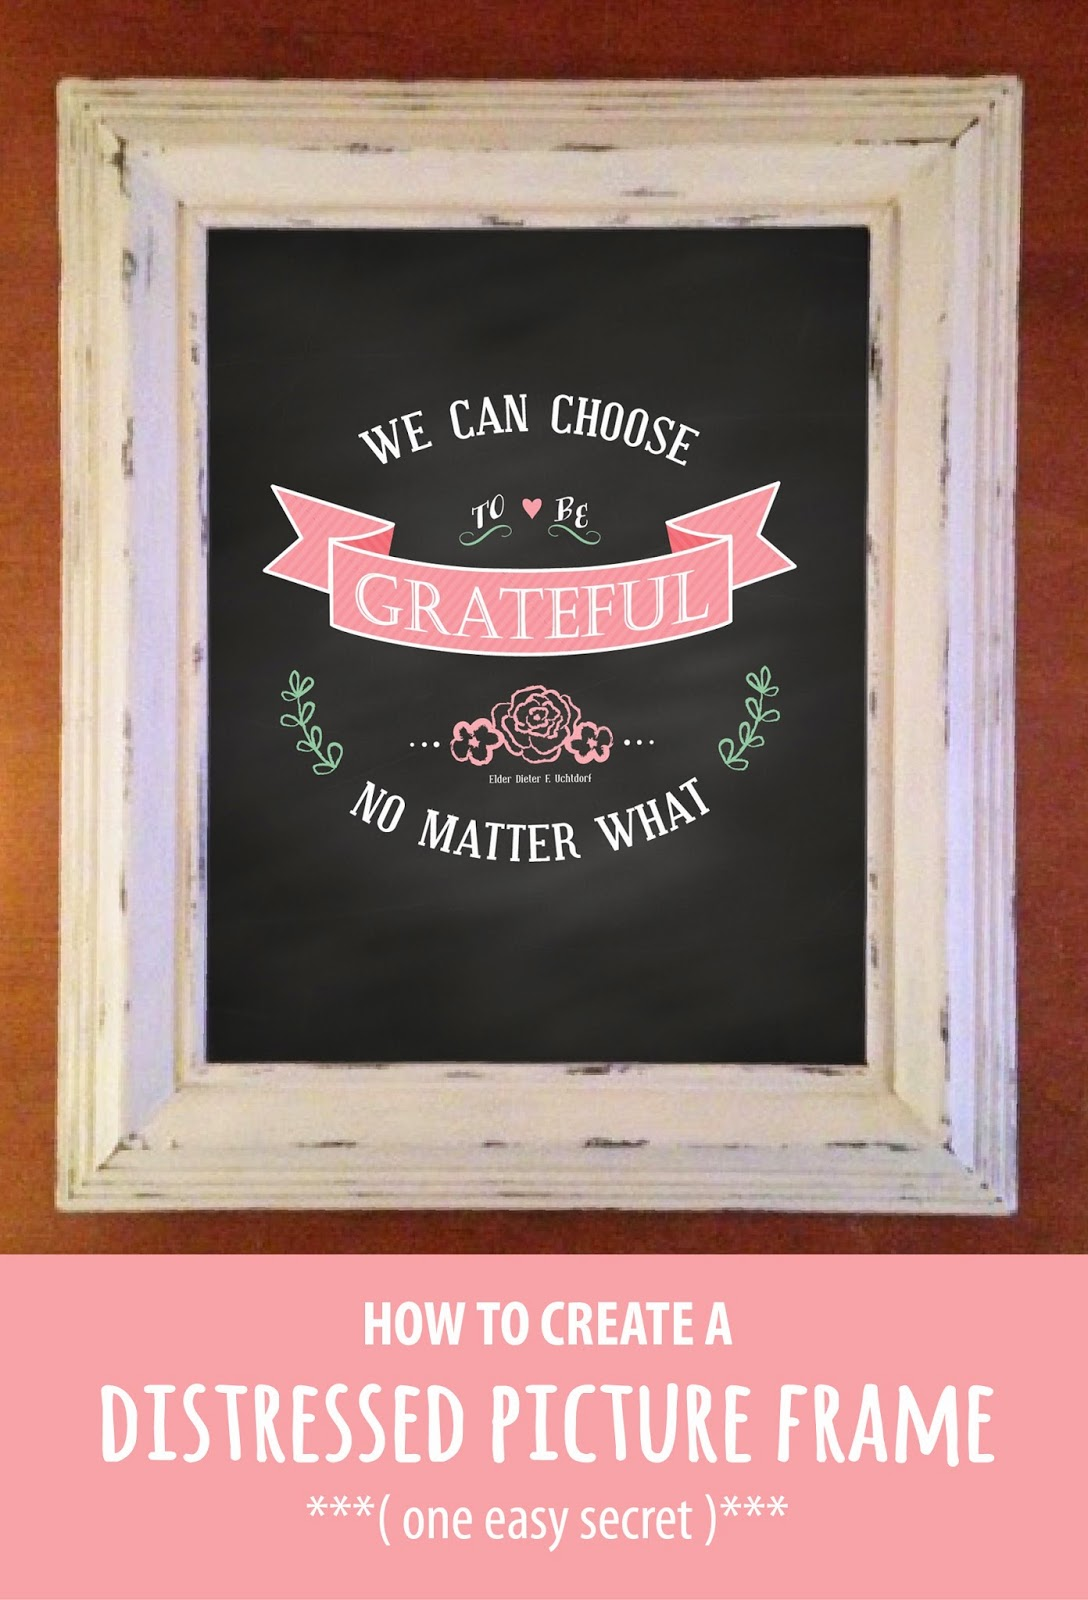 How to create a distressed picture frame one easy secret how to create a distressed picture frame one easy secret jeuxipadfo Choice Image